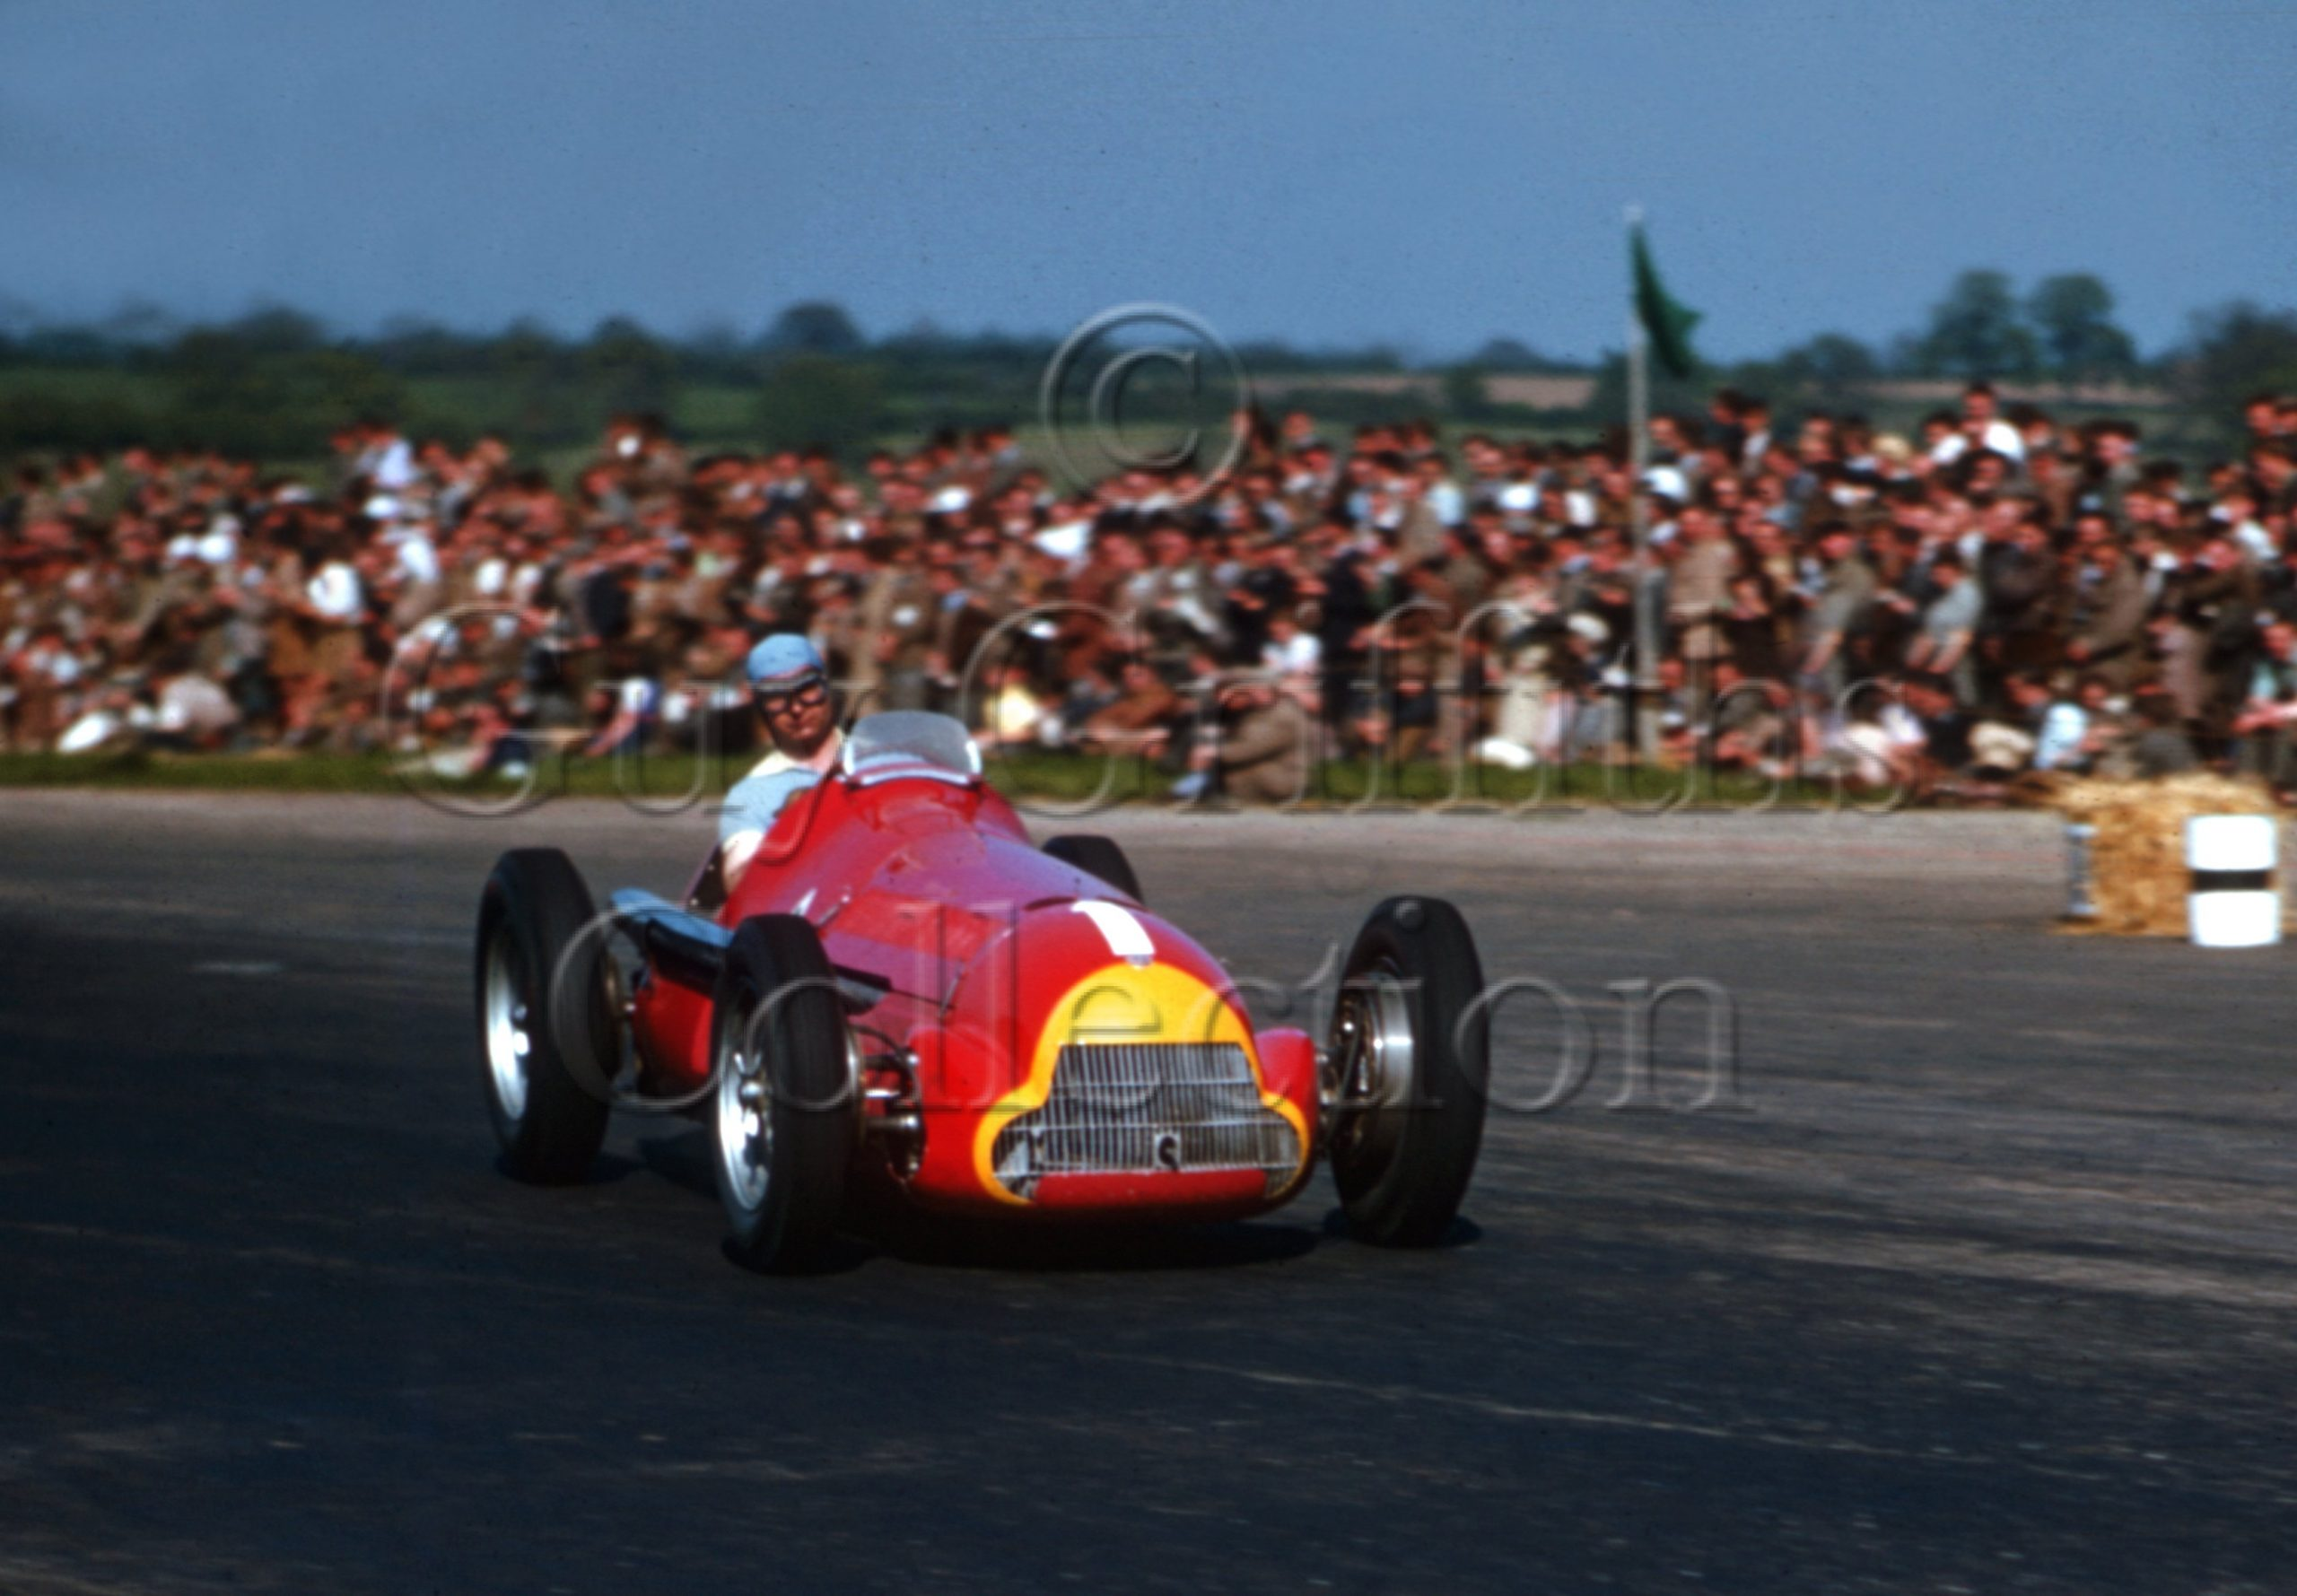 C-3-17–J-Fangio–Alfa-Romeo-158–Silverstone–13-05-1950.jpg - Guy Griffiths Collection